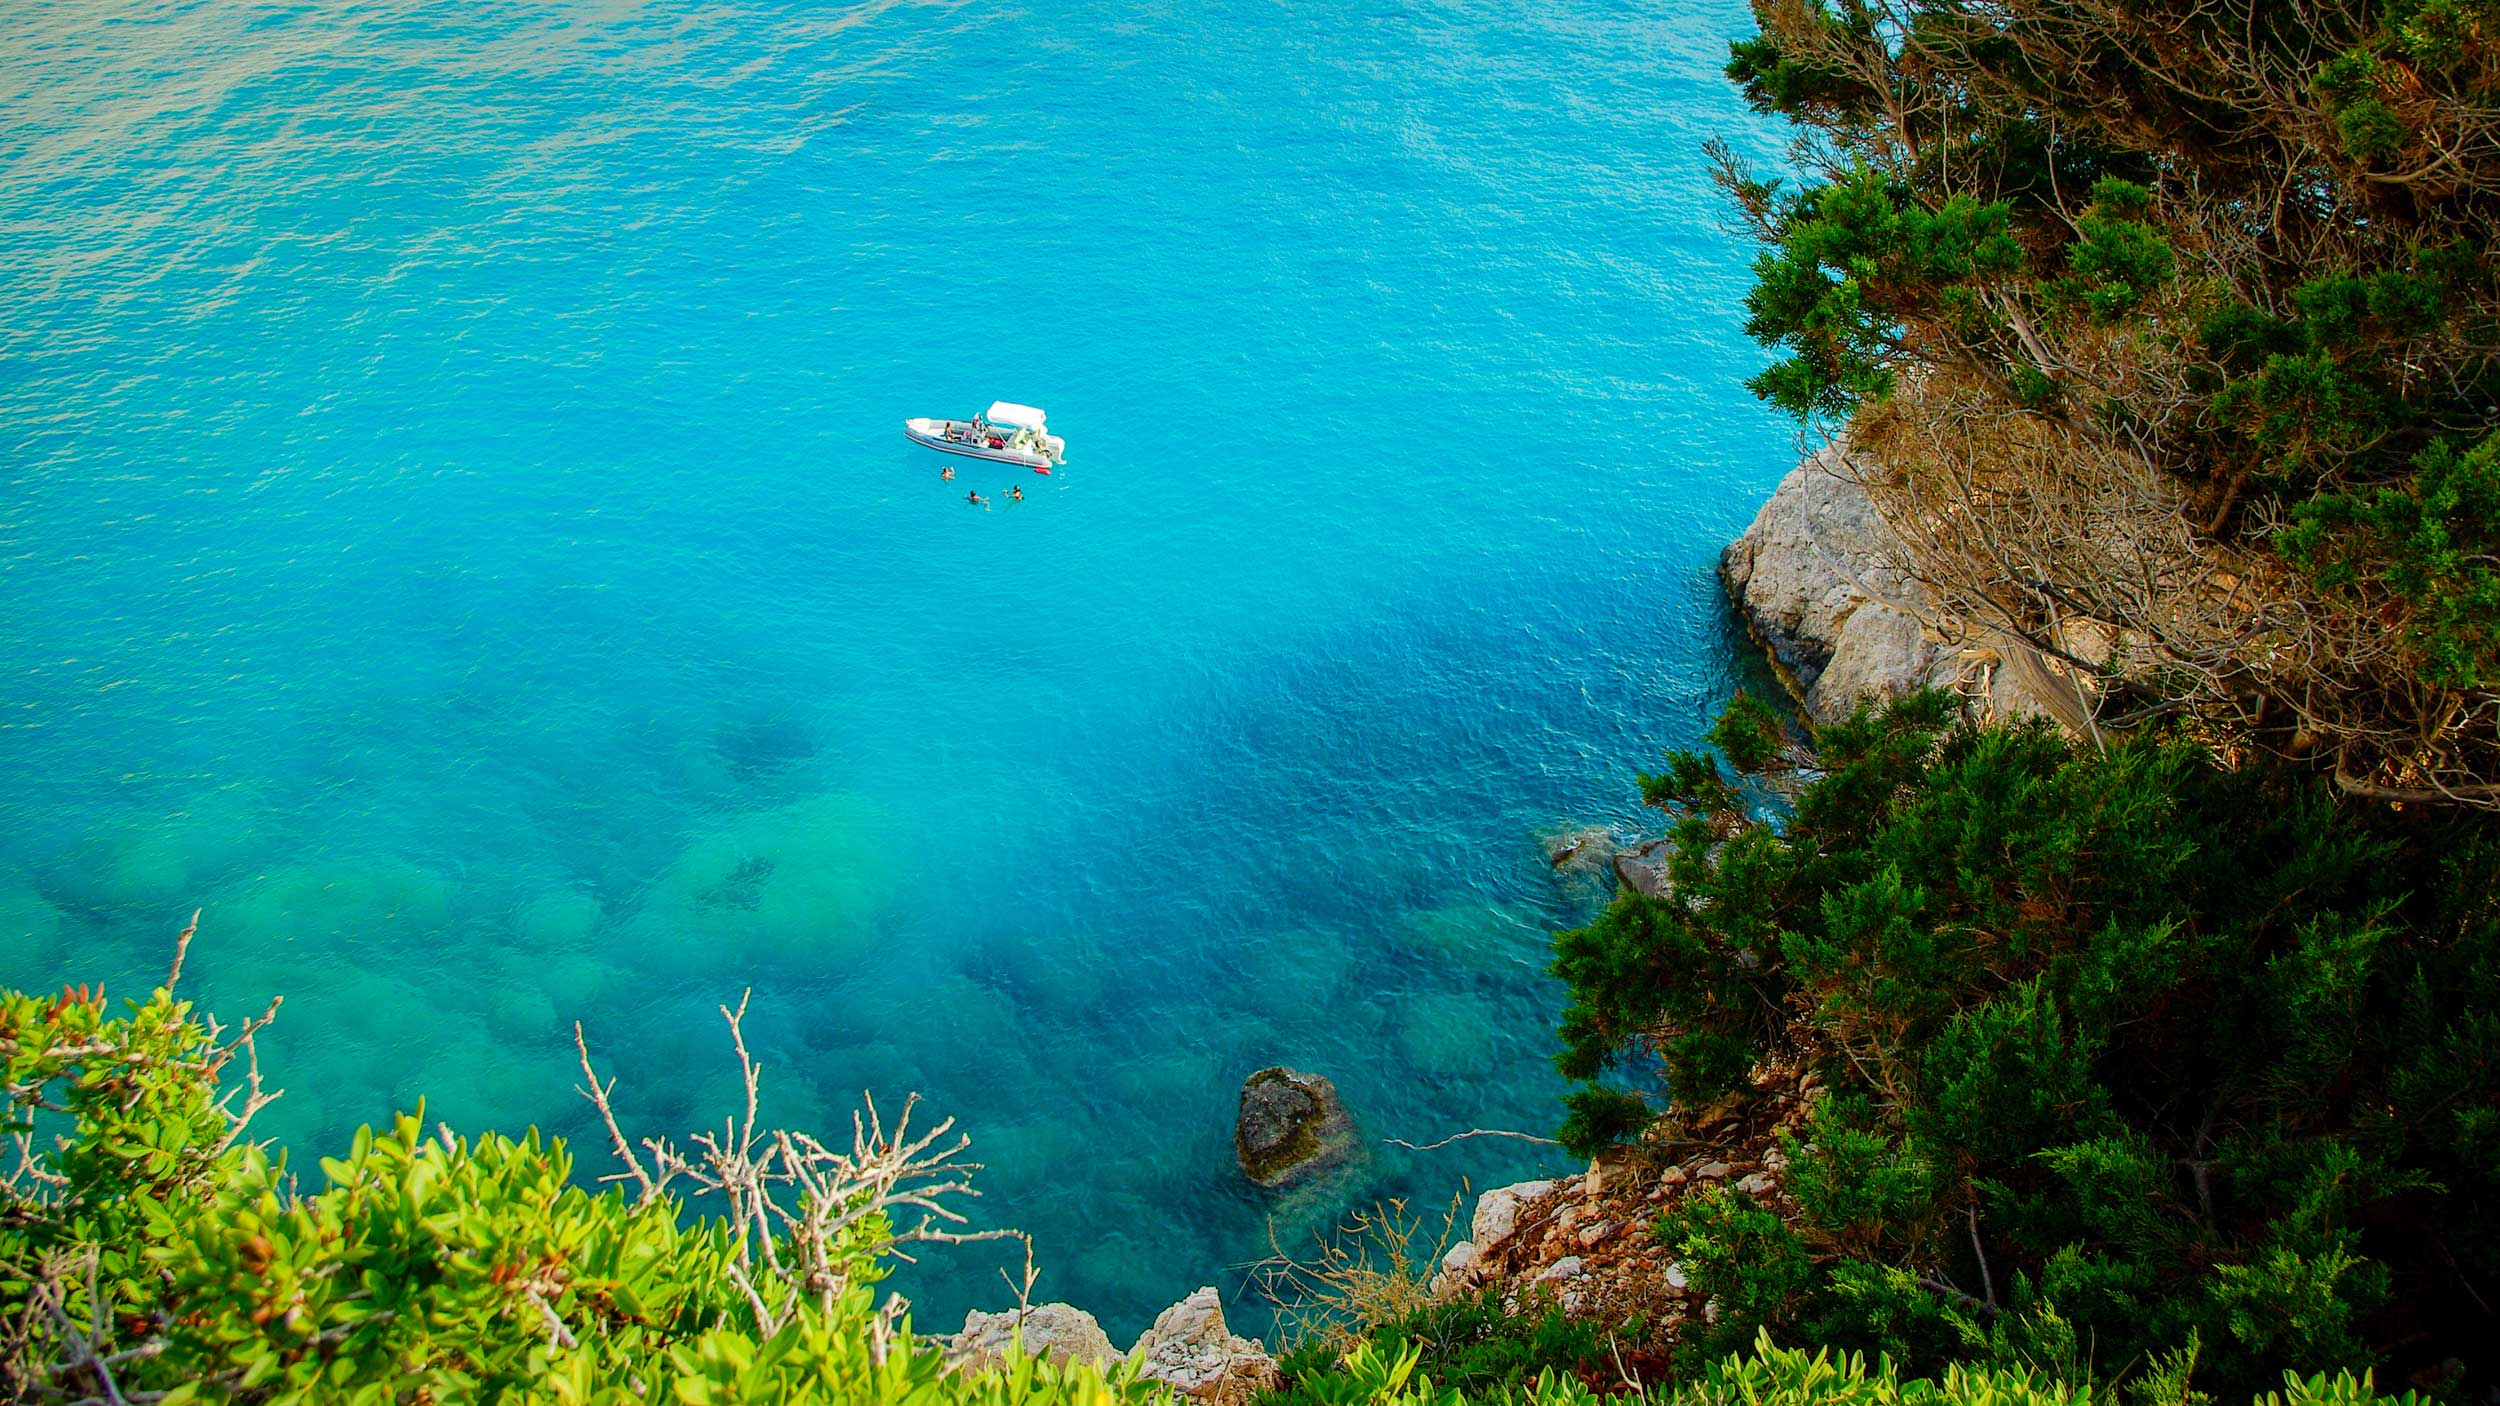 Looking down the side of a cliff onto a boat on crystal-clear blue sea with three swimmers by it, Greece